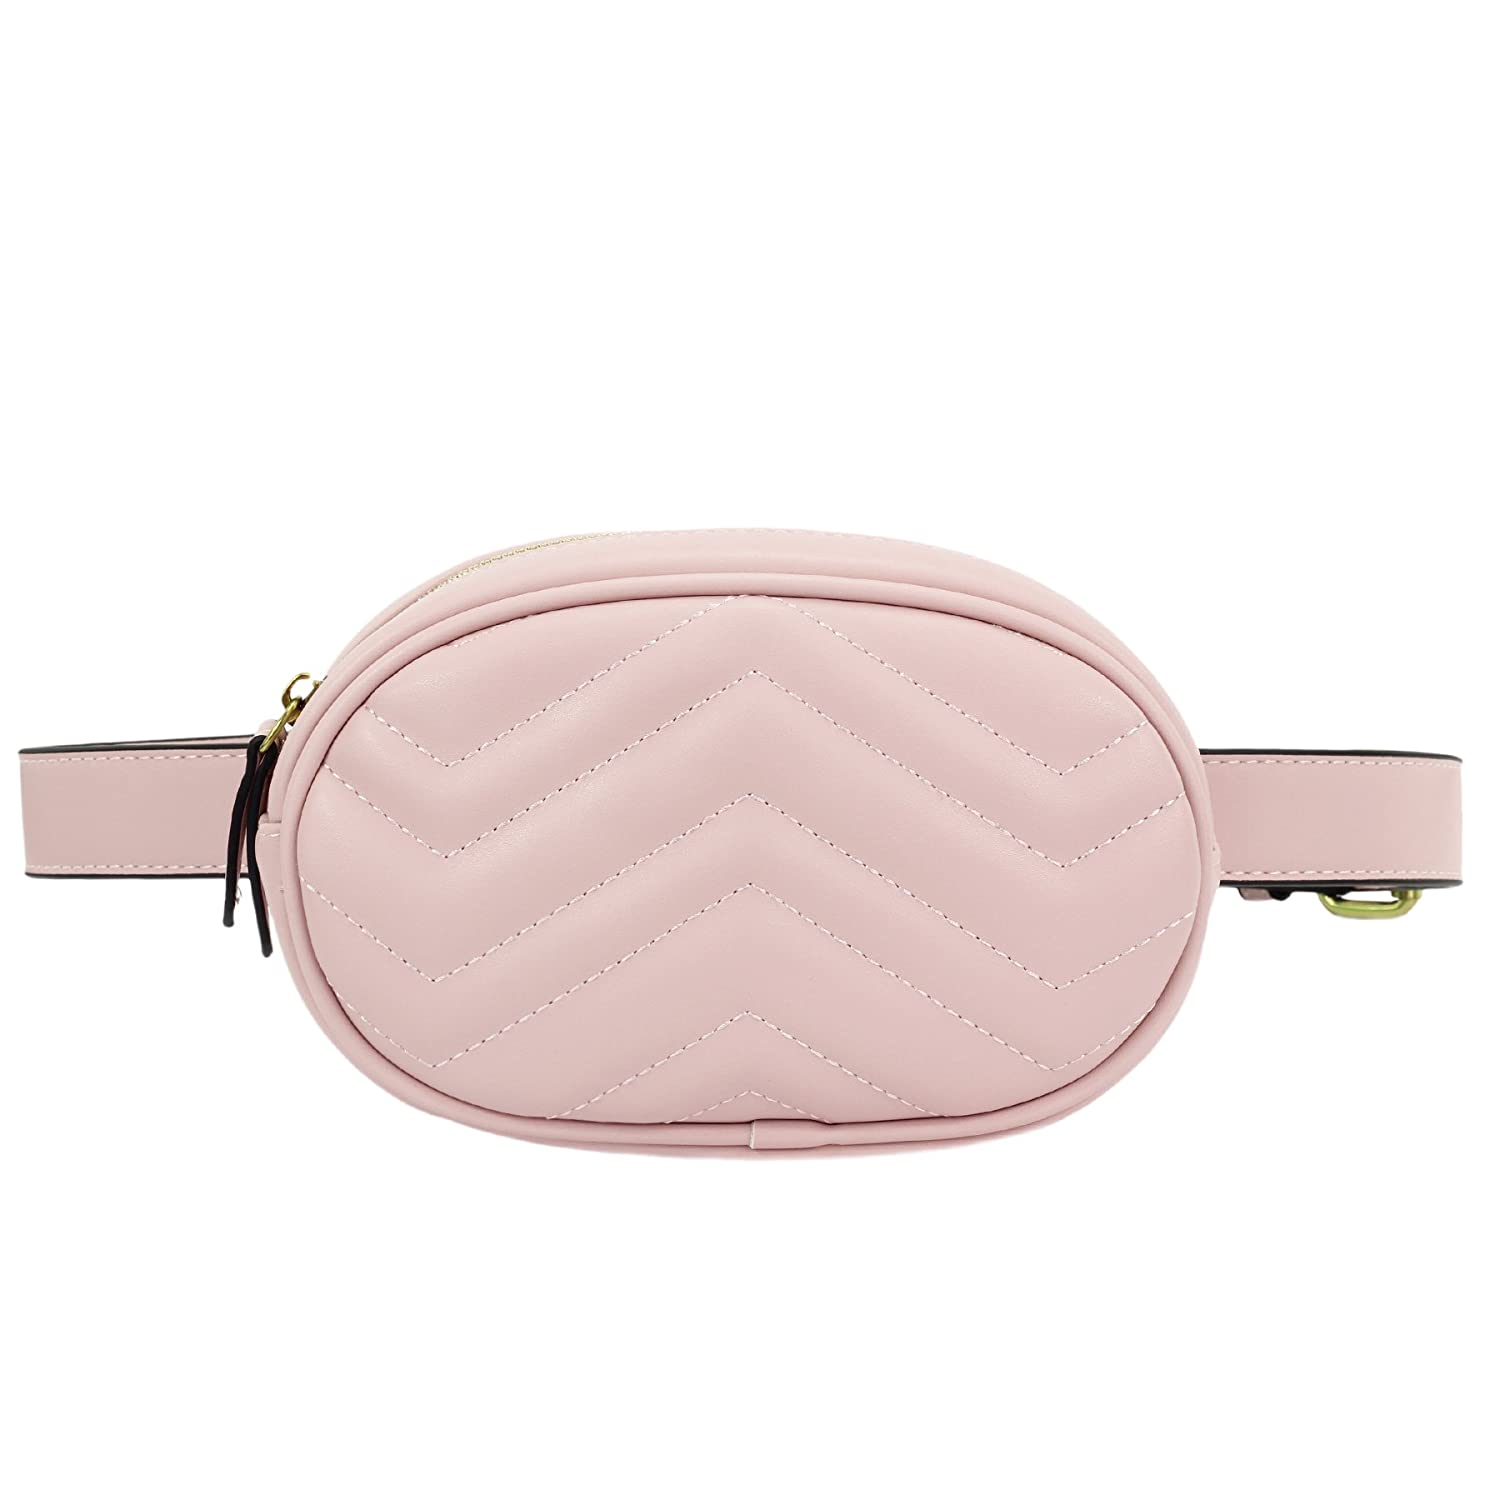 ZORFIN Women Fashion Quilted Leather Pink Fanny Pack Classy Wasit Bag with Two Belts  Pink